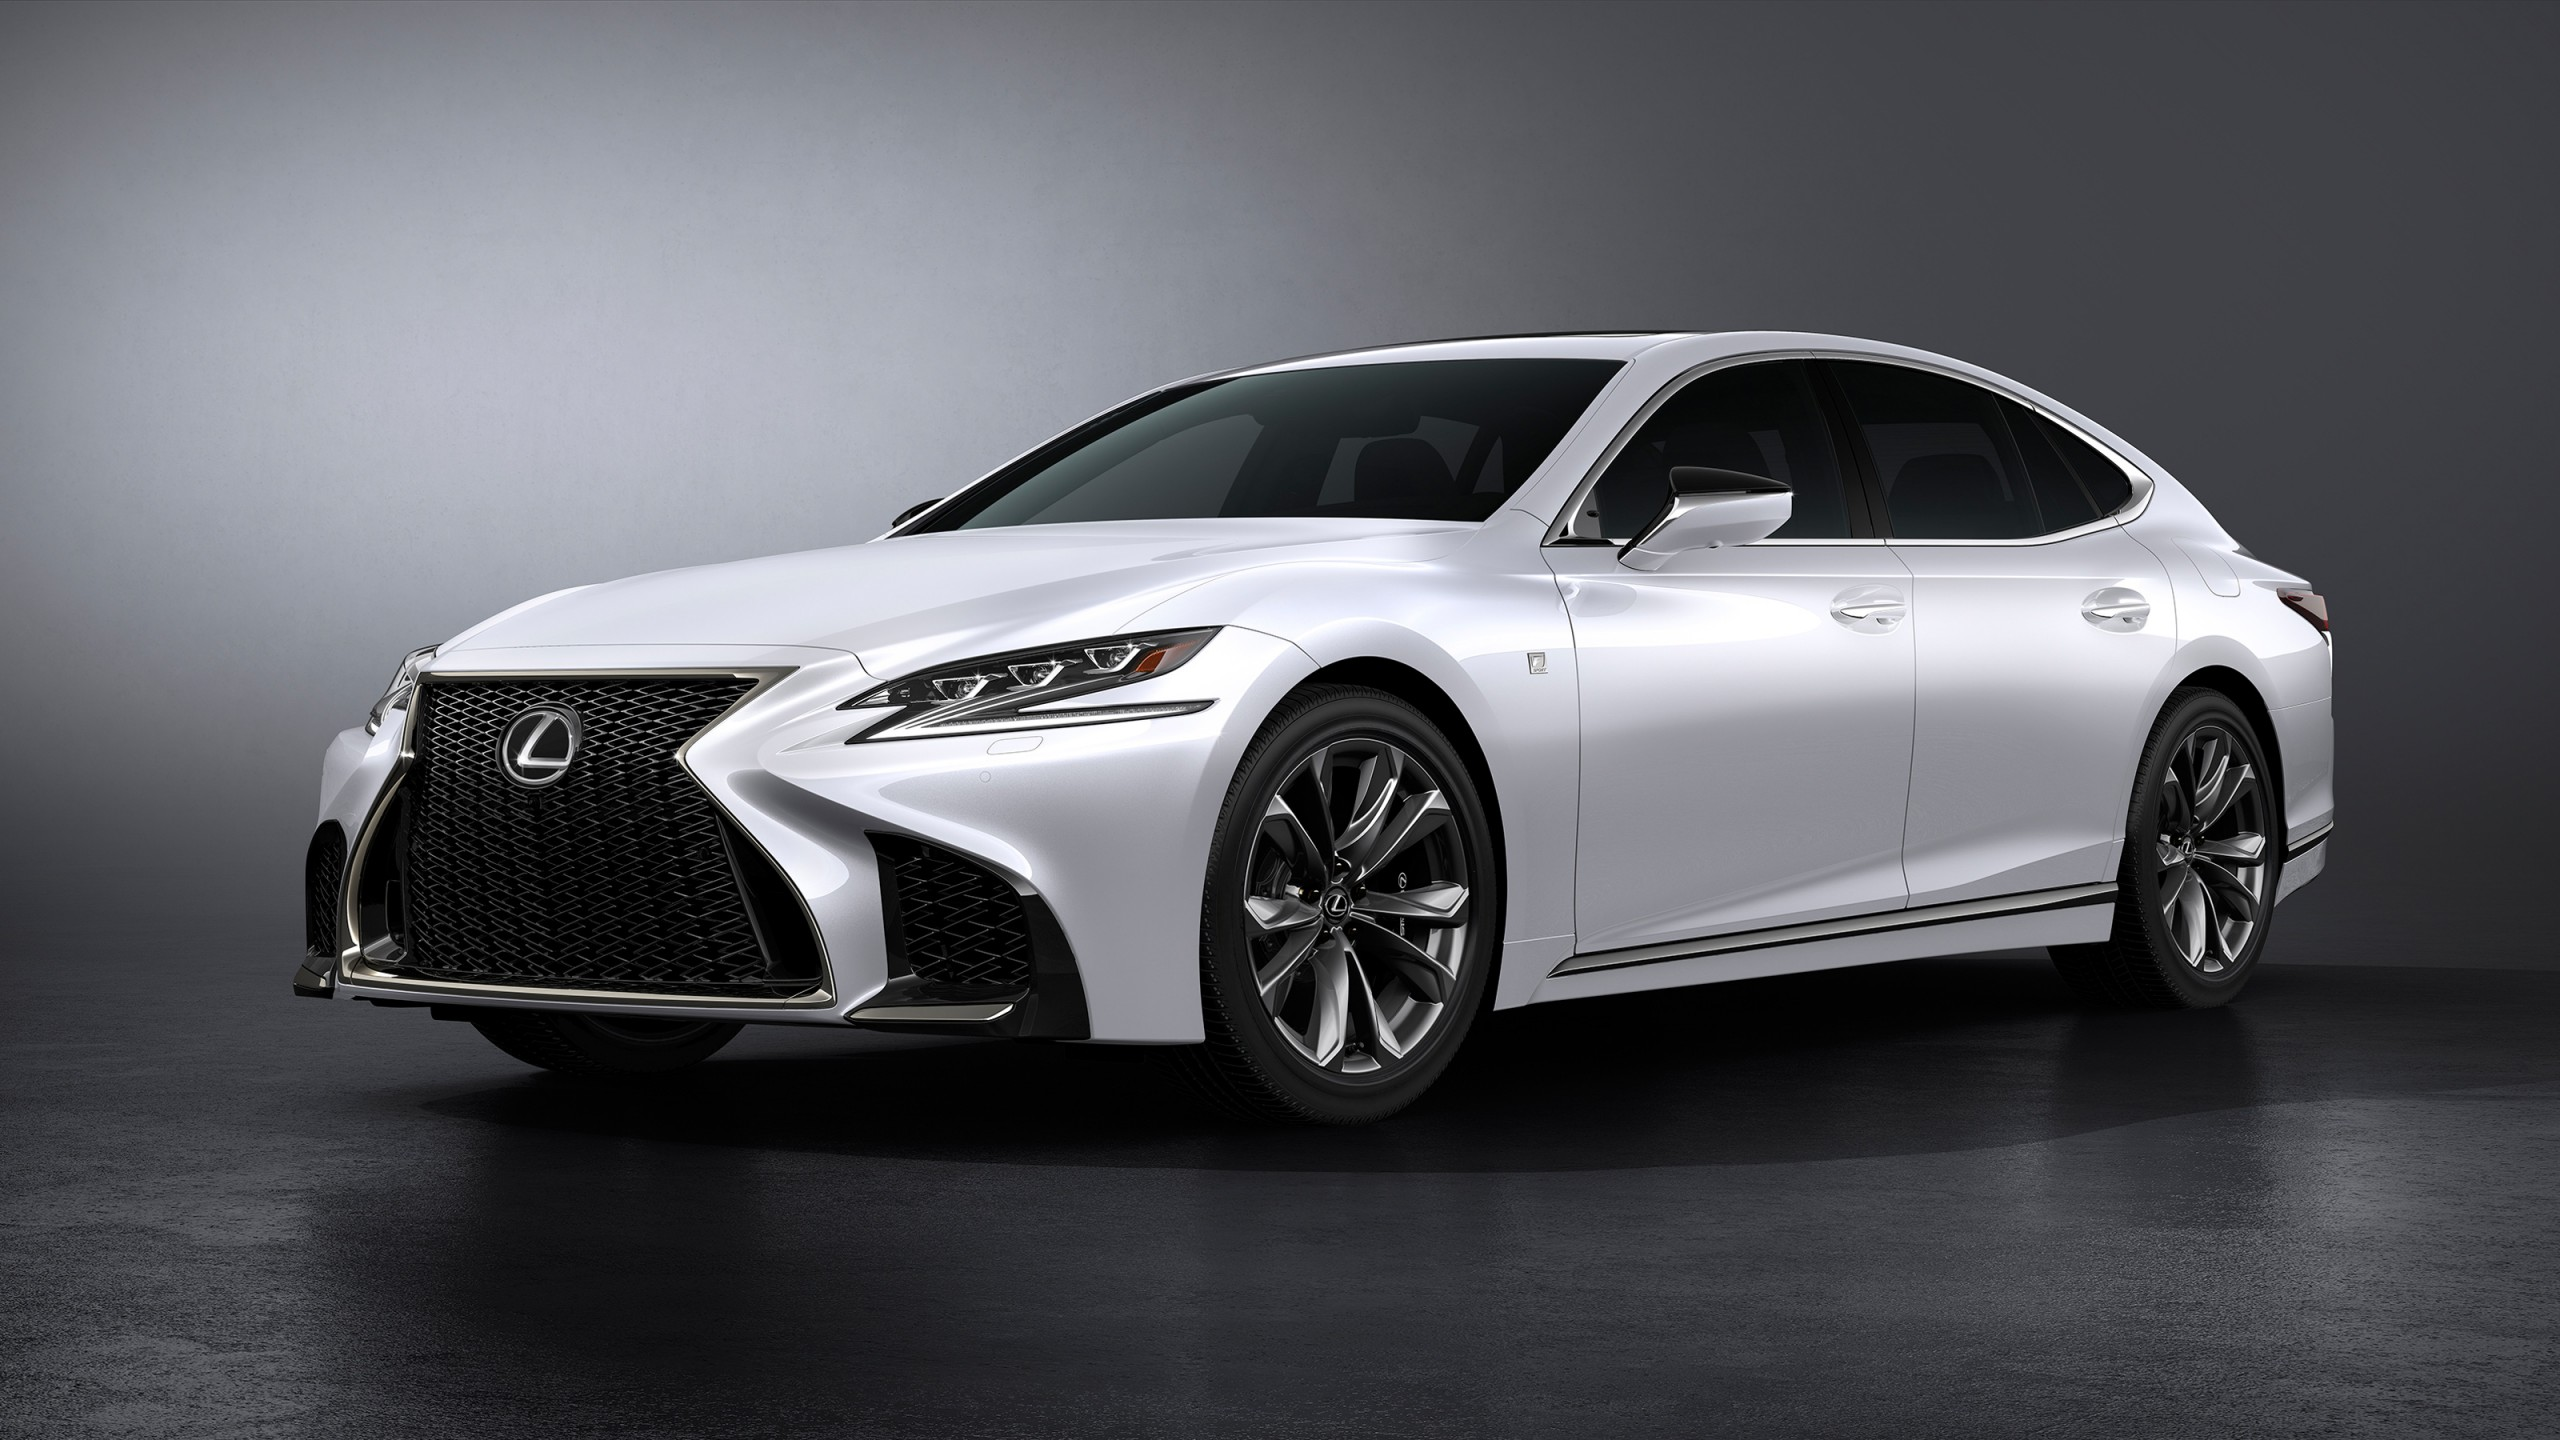 Lexus Nx F Sport 2018 >> 2018 Lexus LS 500 F Sport Wallpaper | HD Car Wallpapers | ID #7715